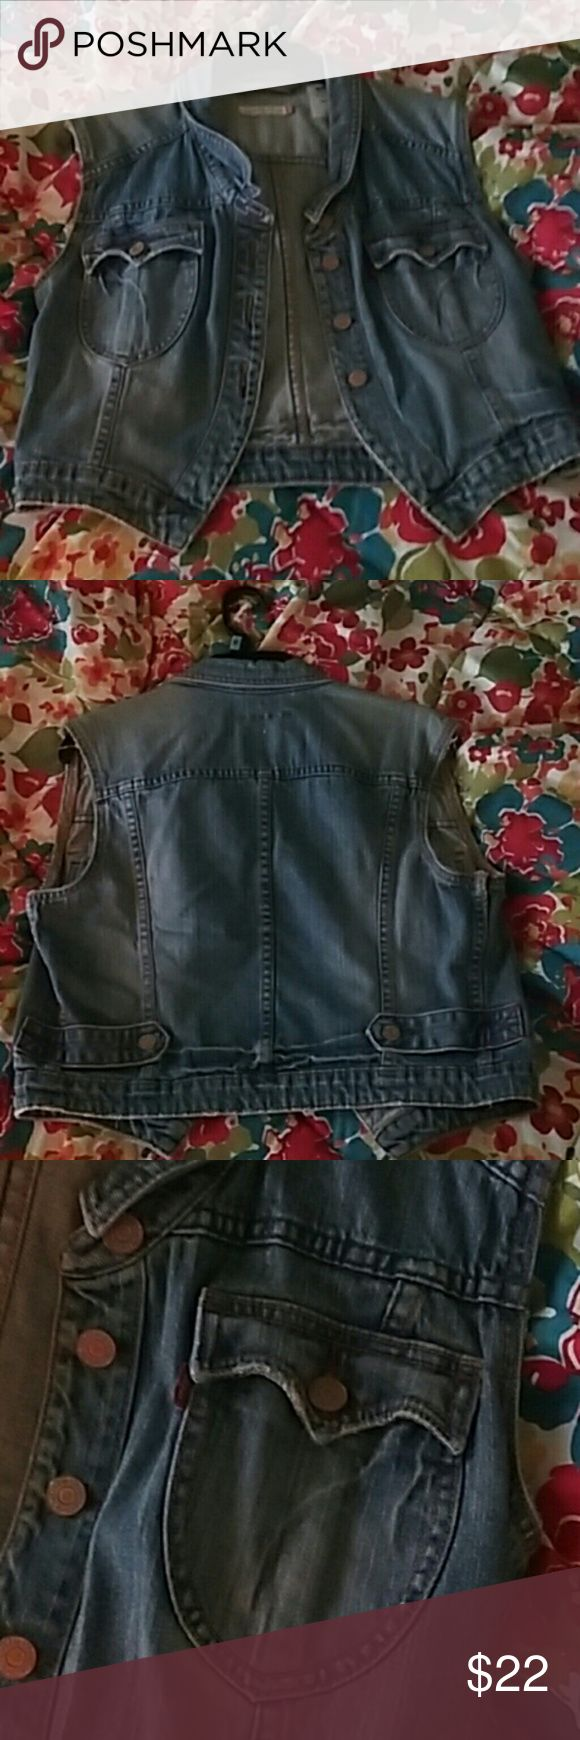 Levis Vest Levis Trucker Vest Great Condition   🚫No Trades  🅱undle & Save  ✅Use the offer button Levi's Jackets & Coats Vests